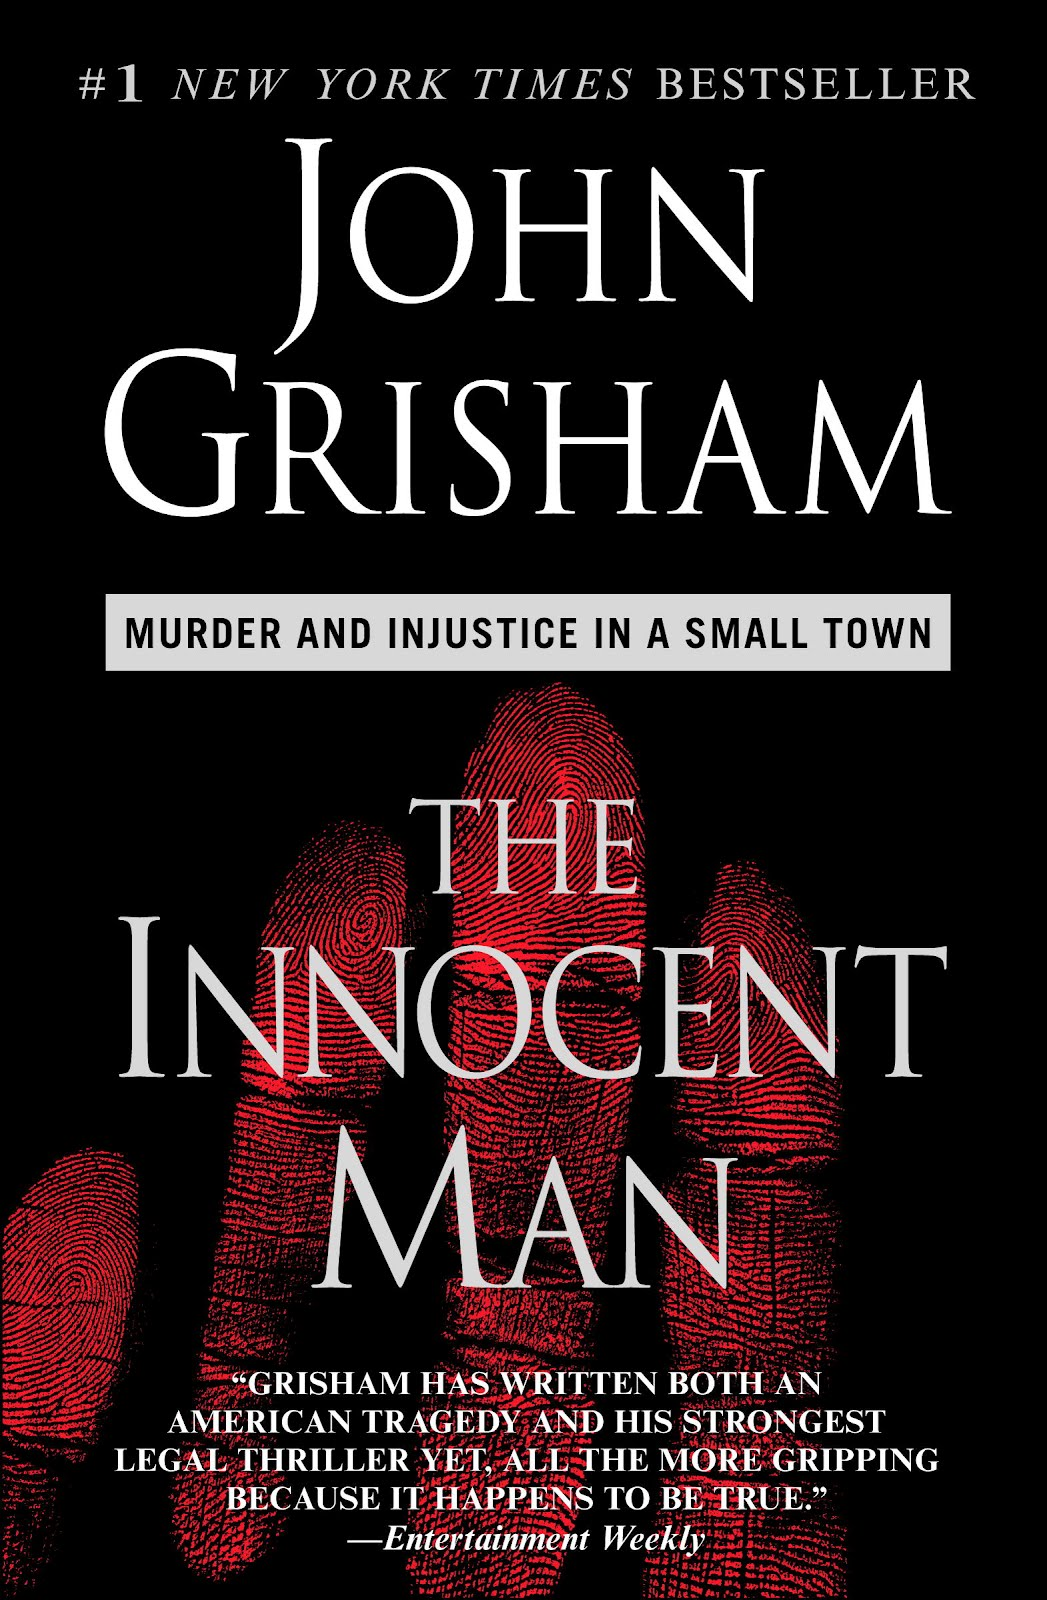 the innocent man essays Free essay: the innocent man: murder and injustice in a small town, by john grisham new york: doubleday, 2006 368pp hardcover $2895 isbn.